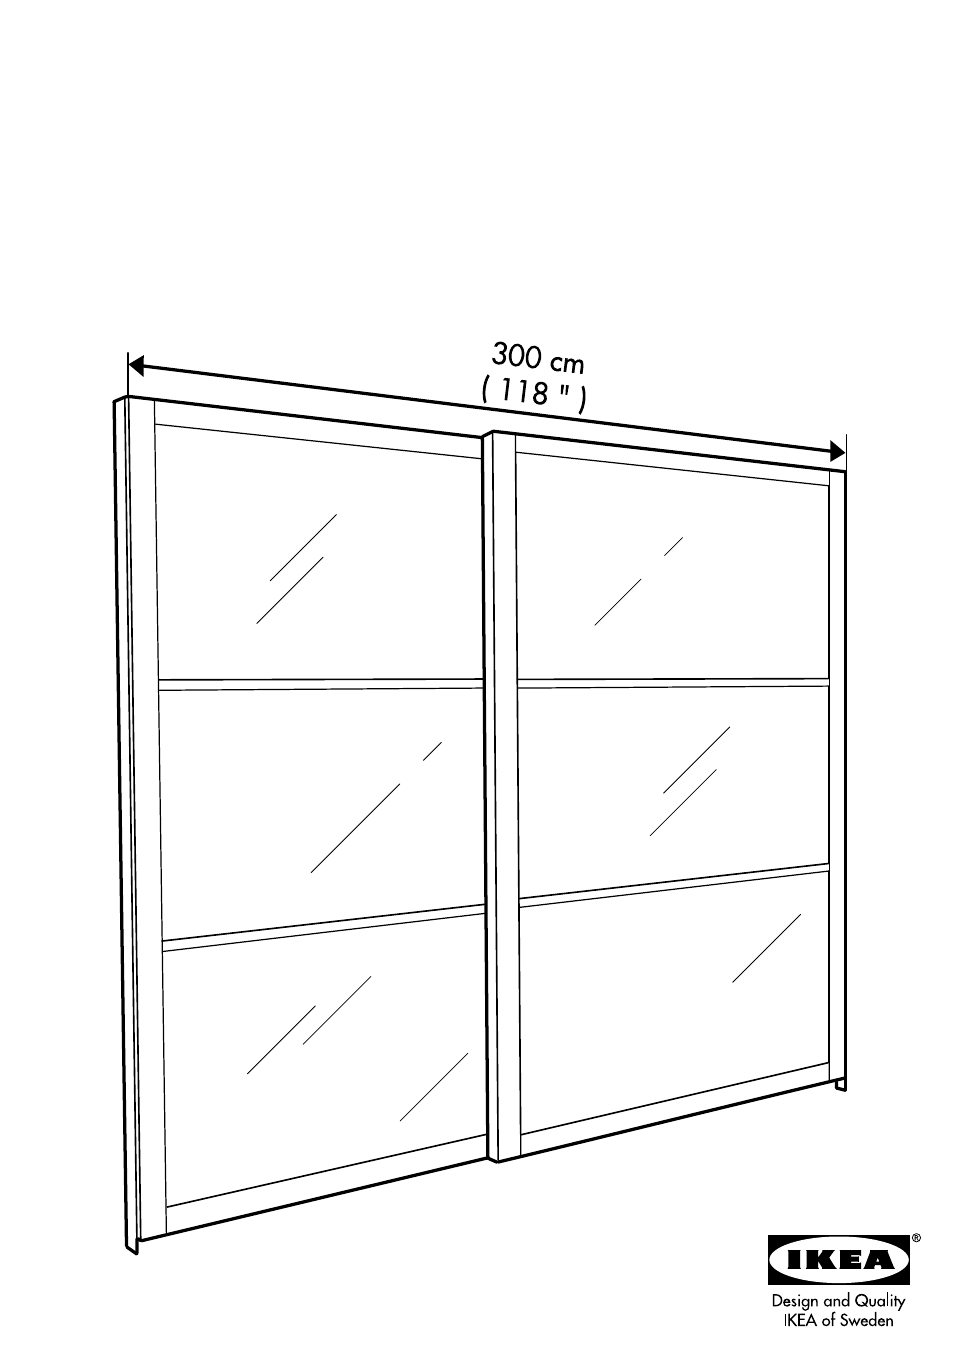 ikea pax lyngdal sliding doors assembly instruction free pdf rh manualagent com ikea pax installation manual ikea pax installation manual